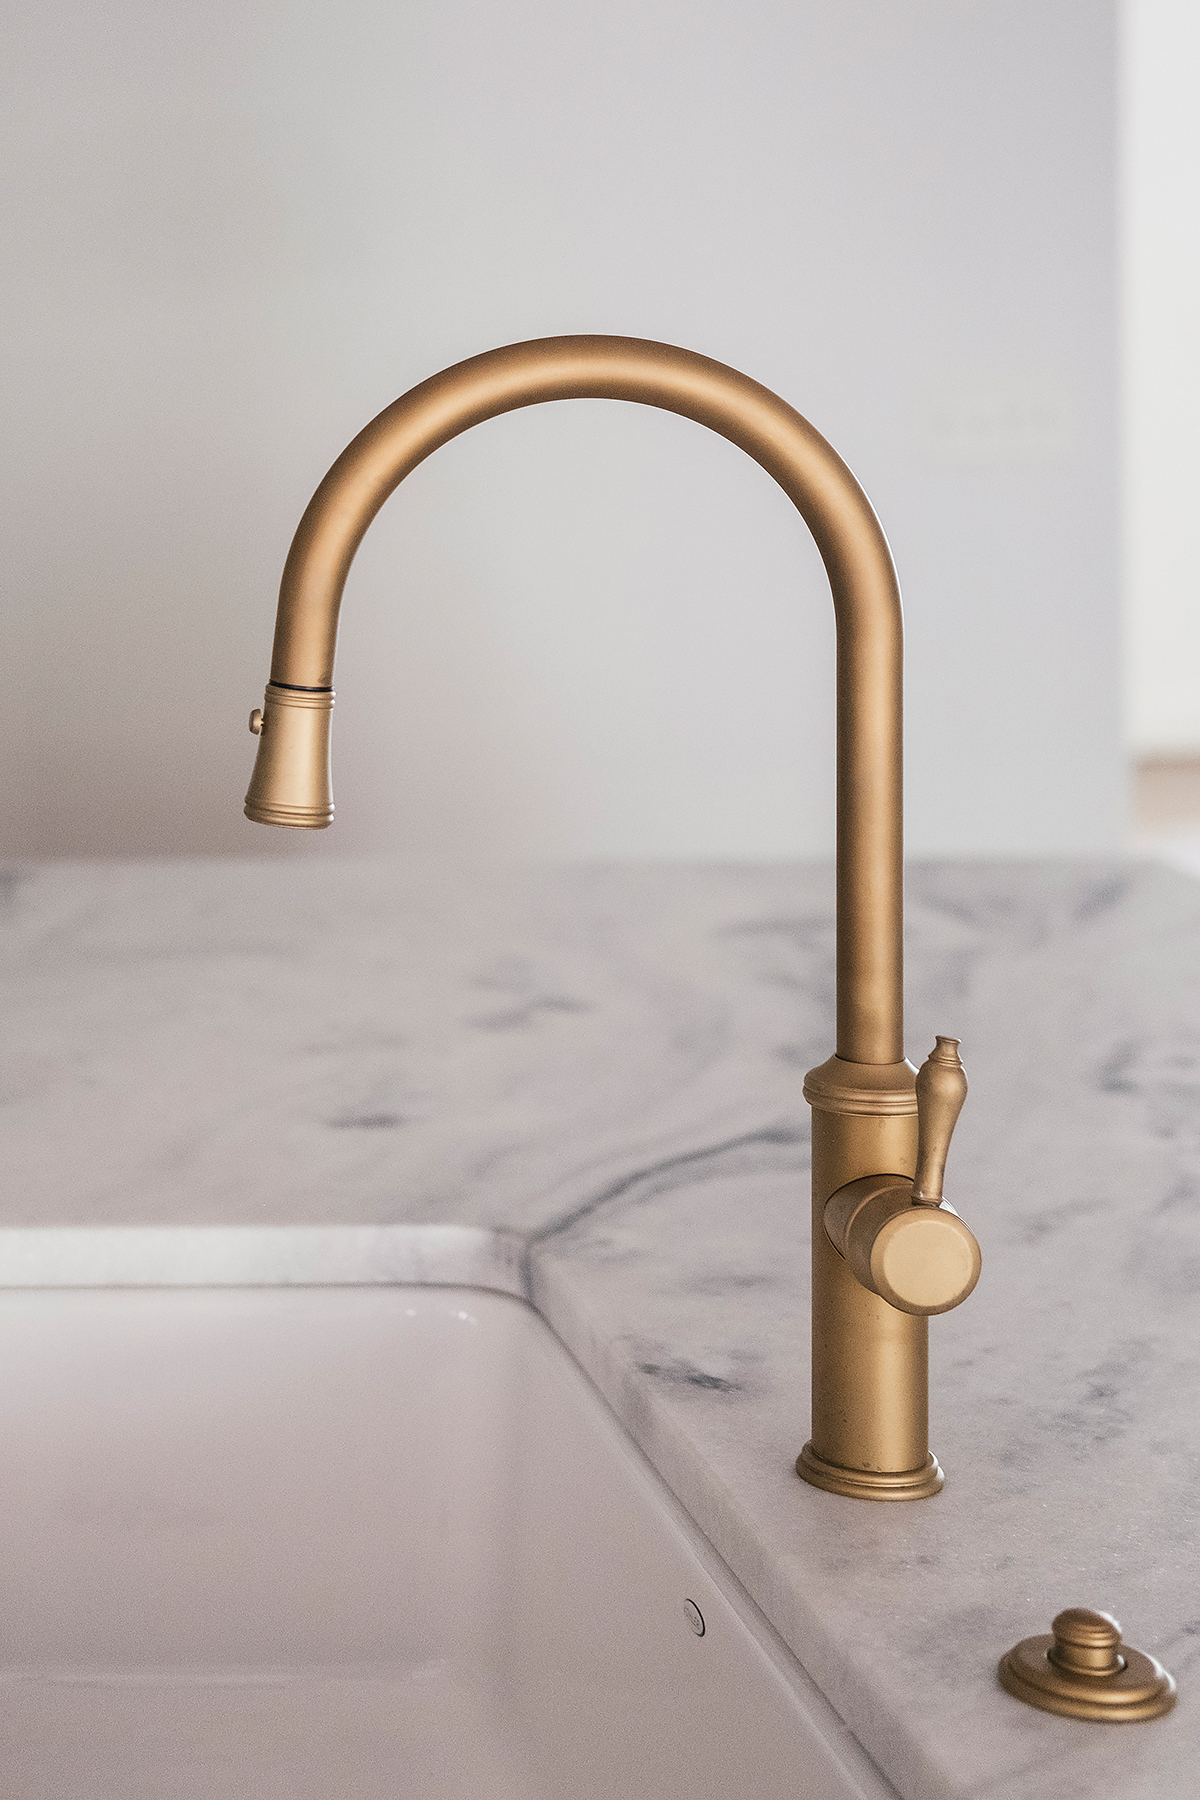 California Faucets California Faucets Leads A Modern Day Gold Rush In The